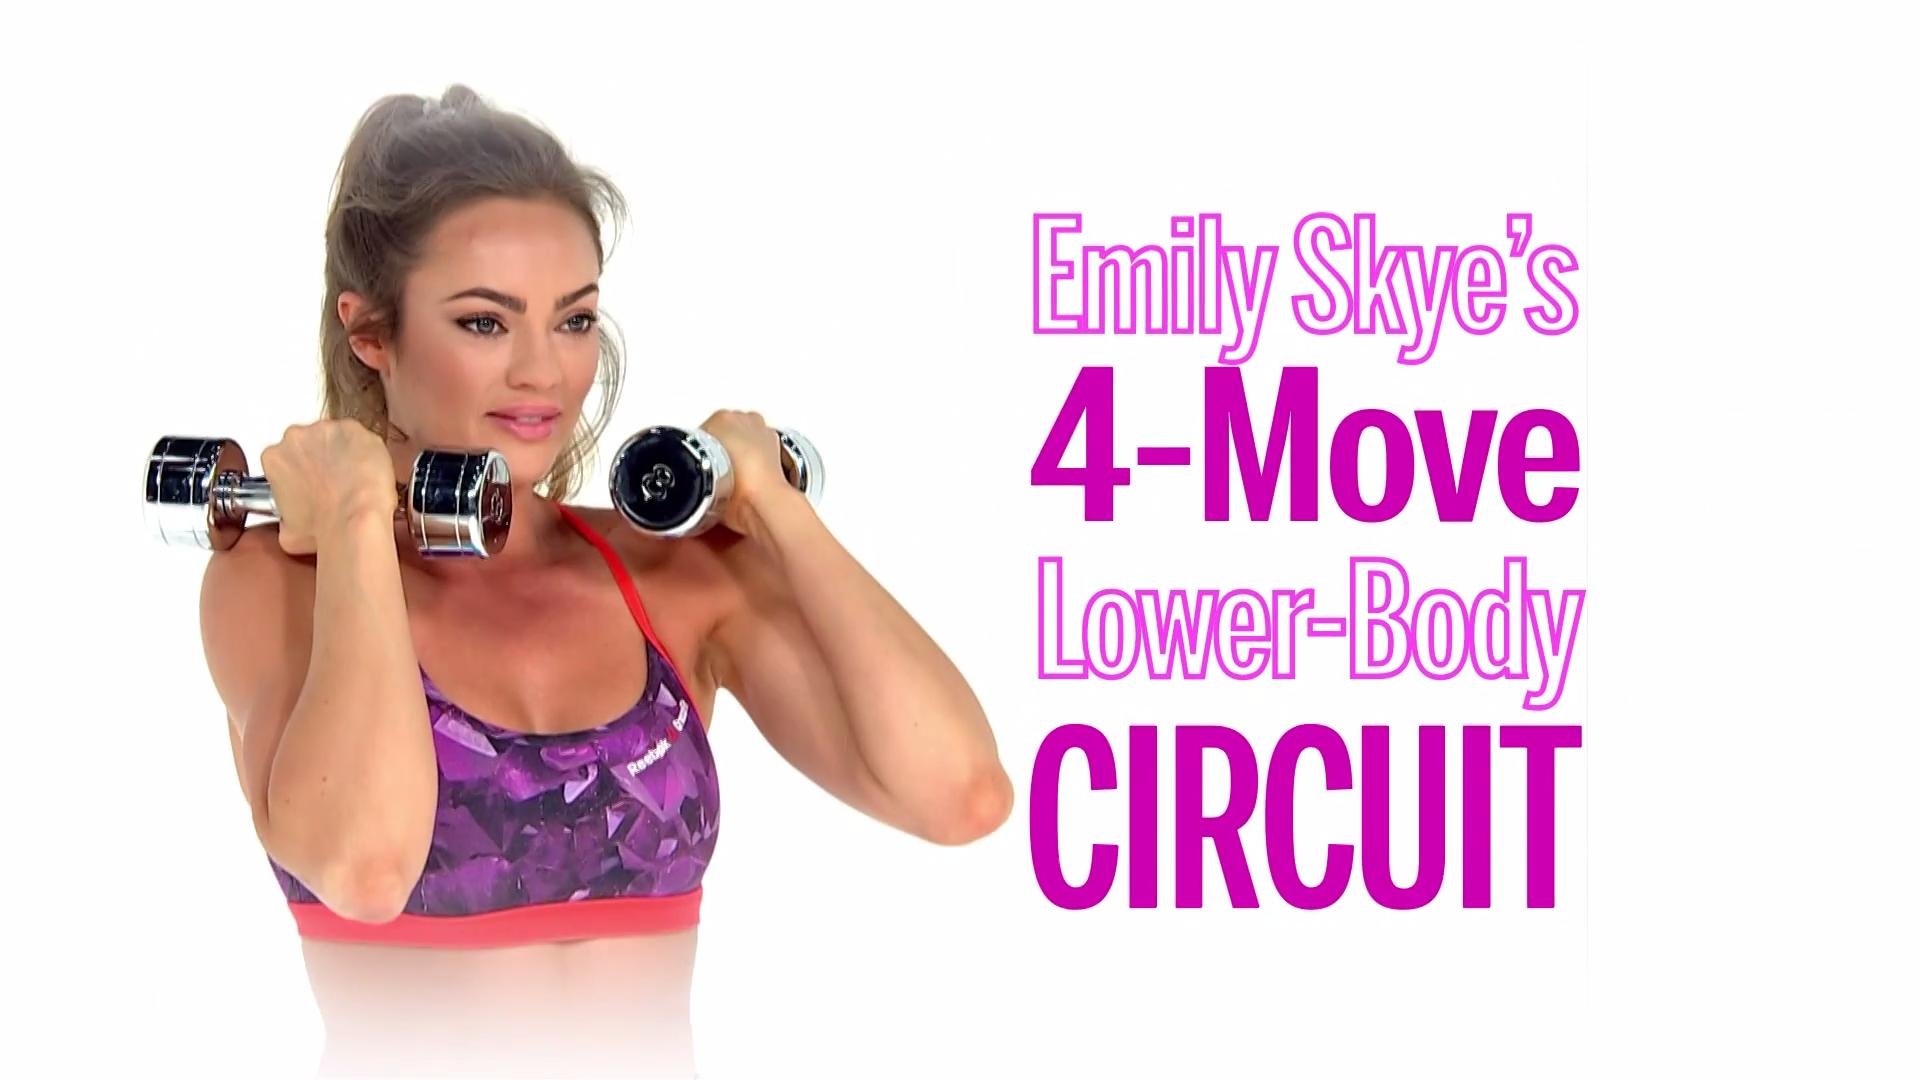 This Fat-Burning Workout by Emily Skye Will Sculpt Your Legs and Lift Your Butt